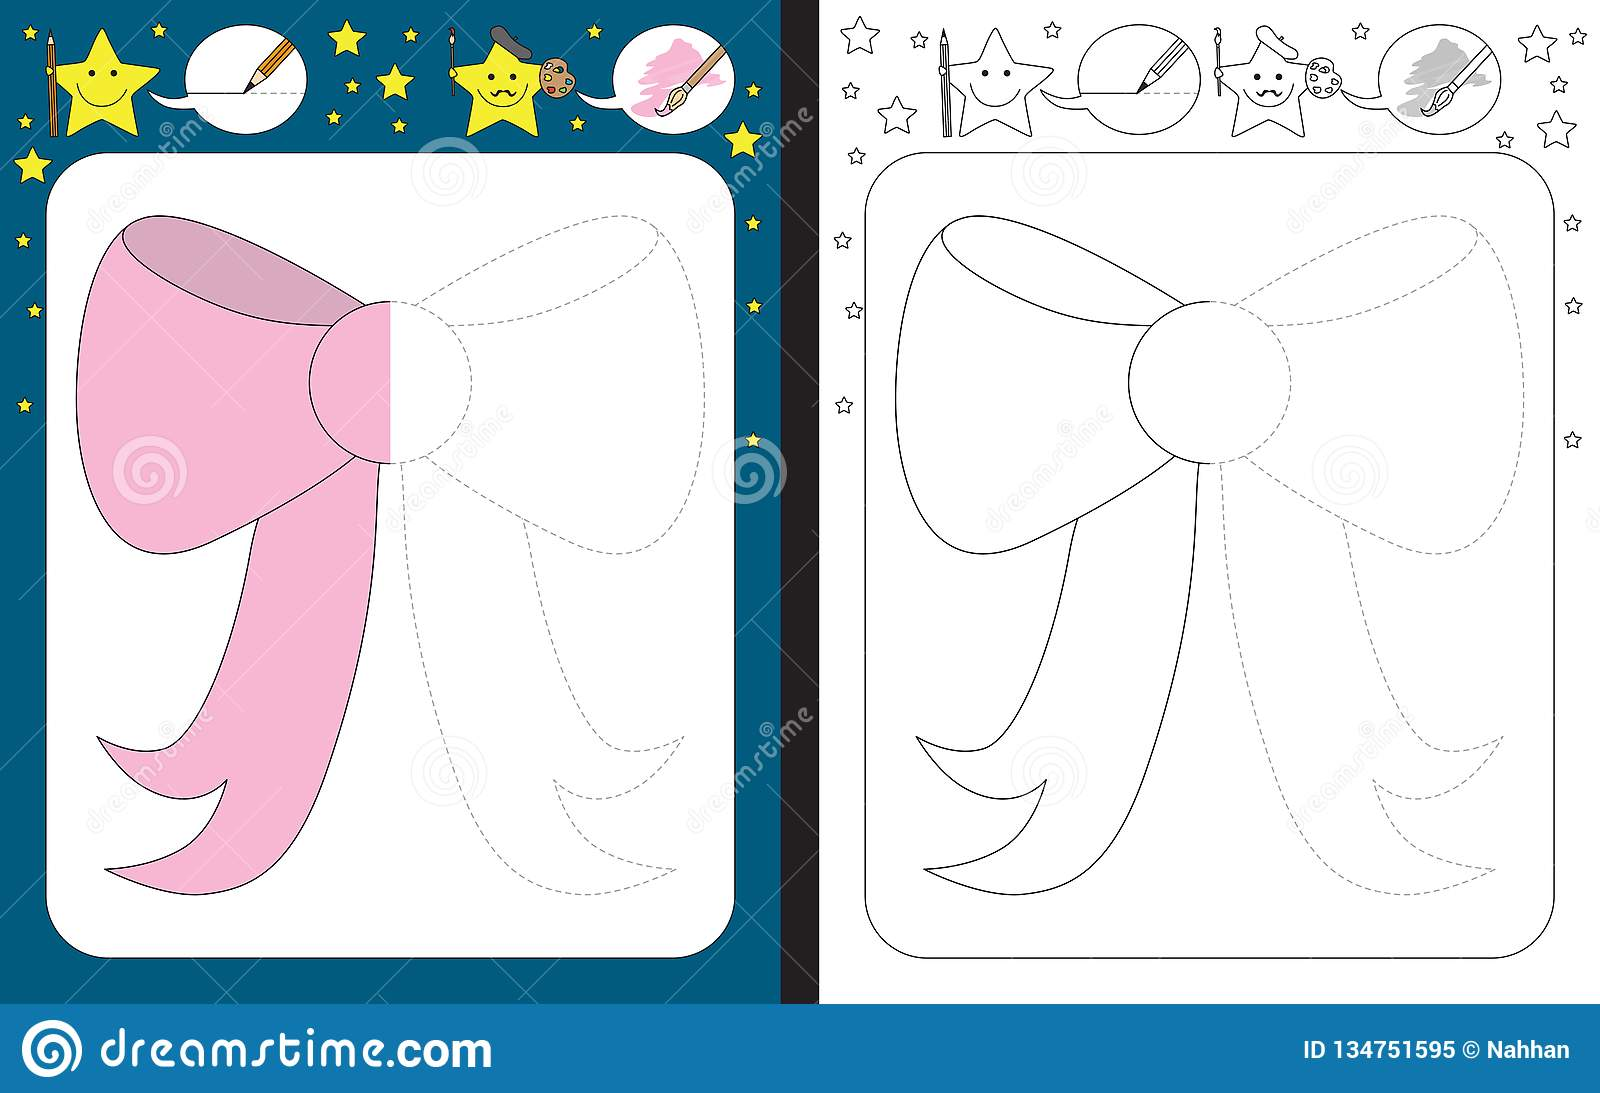 Preschool Worksheet Stock Vector Illustration Of Dashed